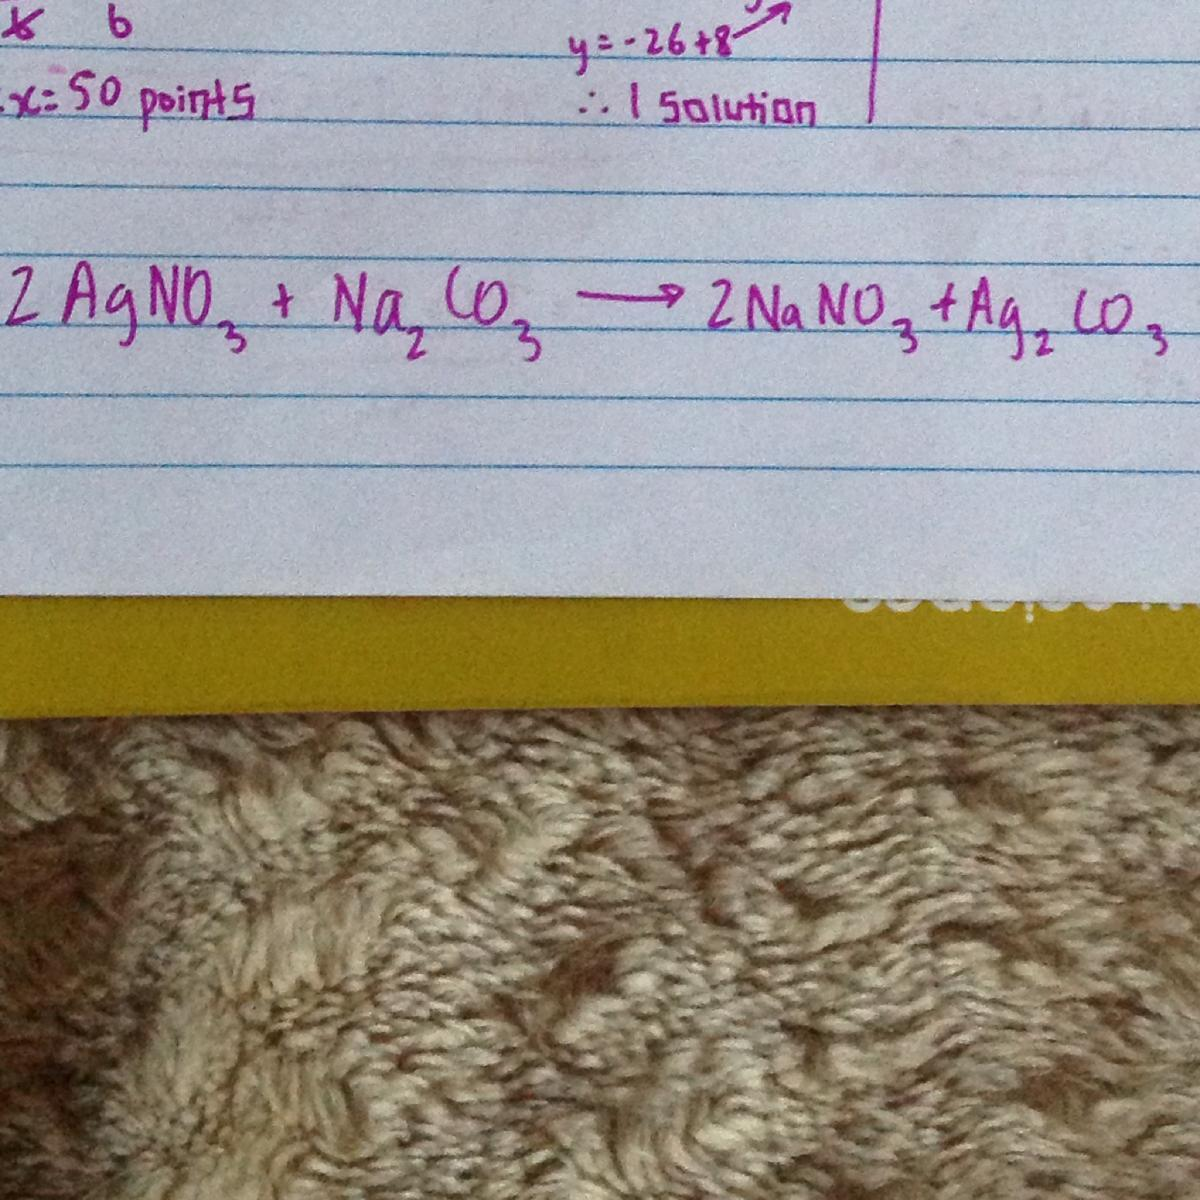 Write The Balanced Complete Ionic Equation For The